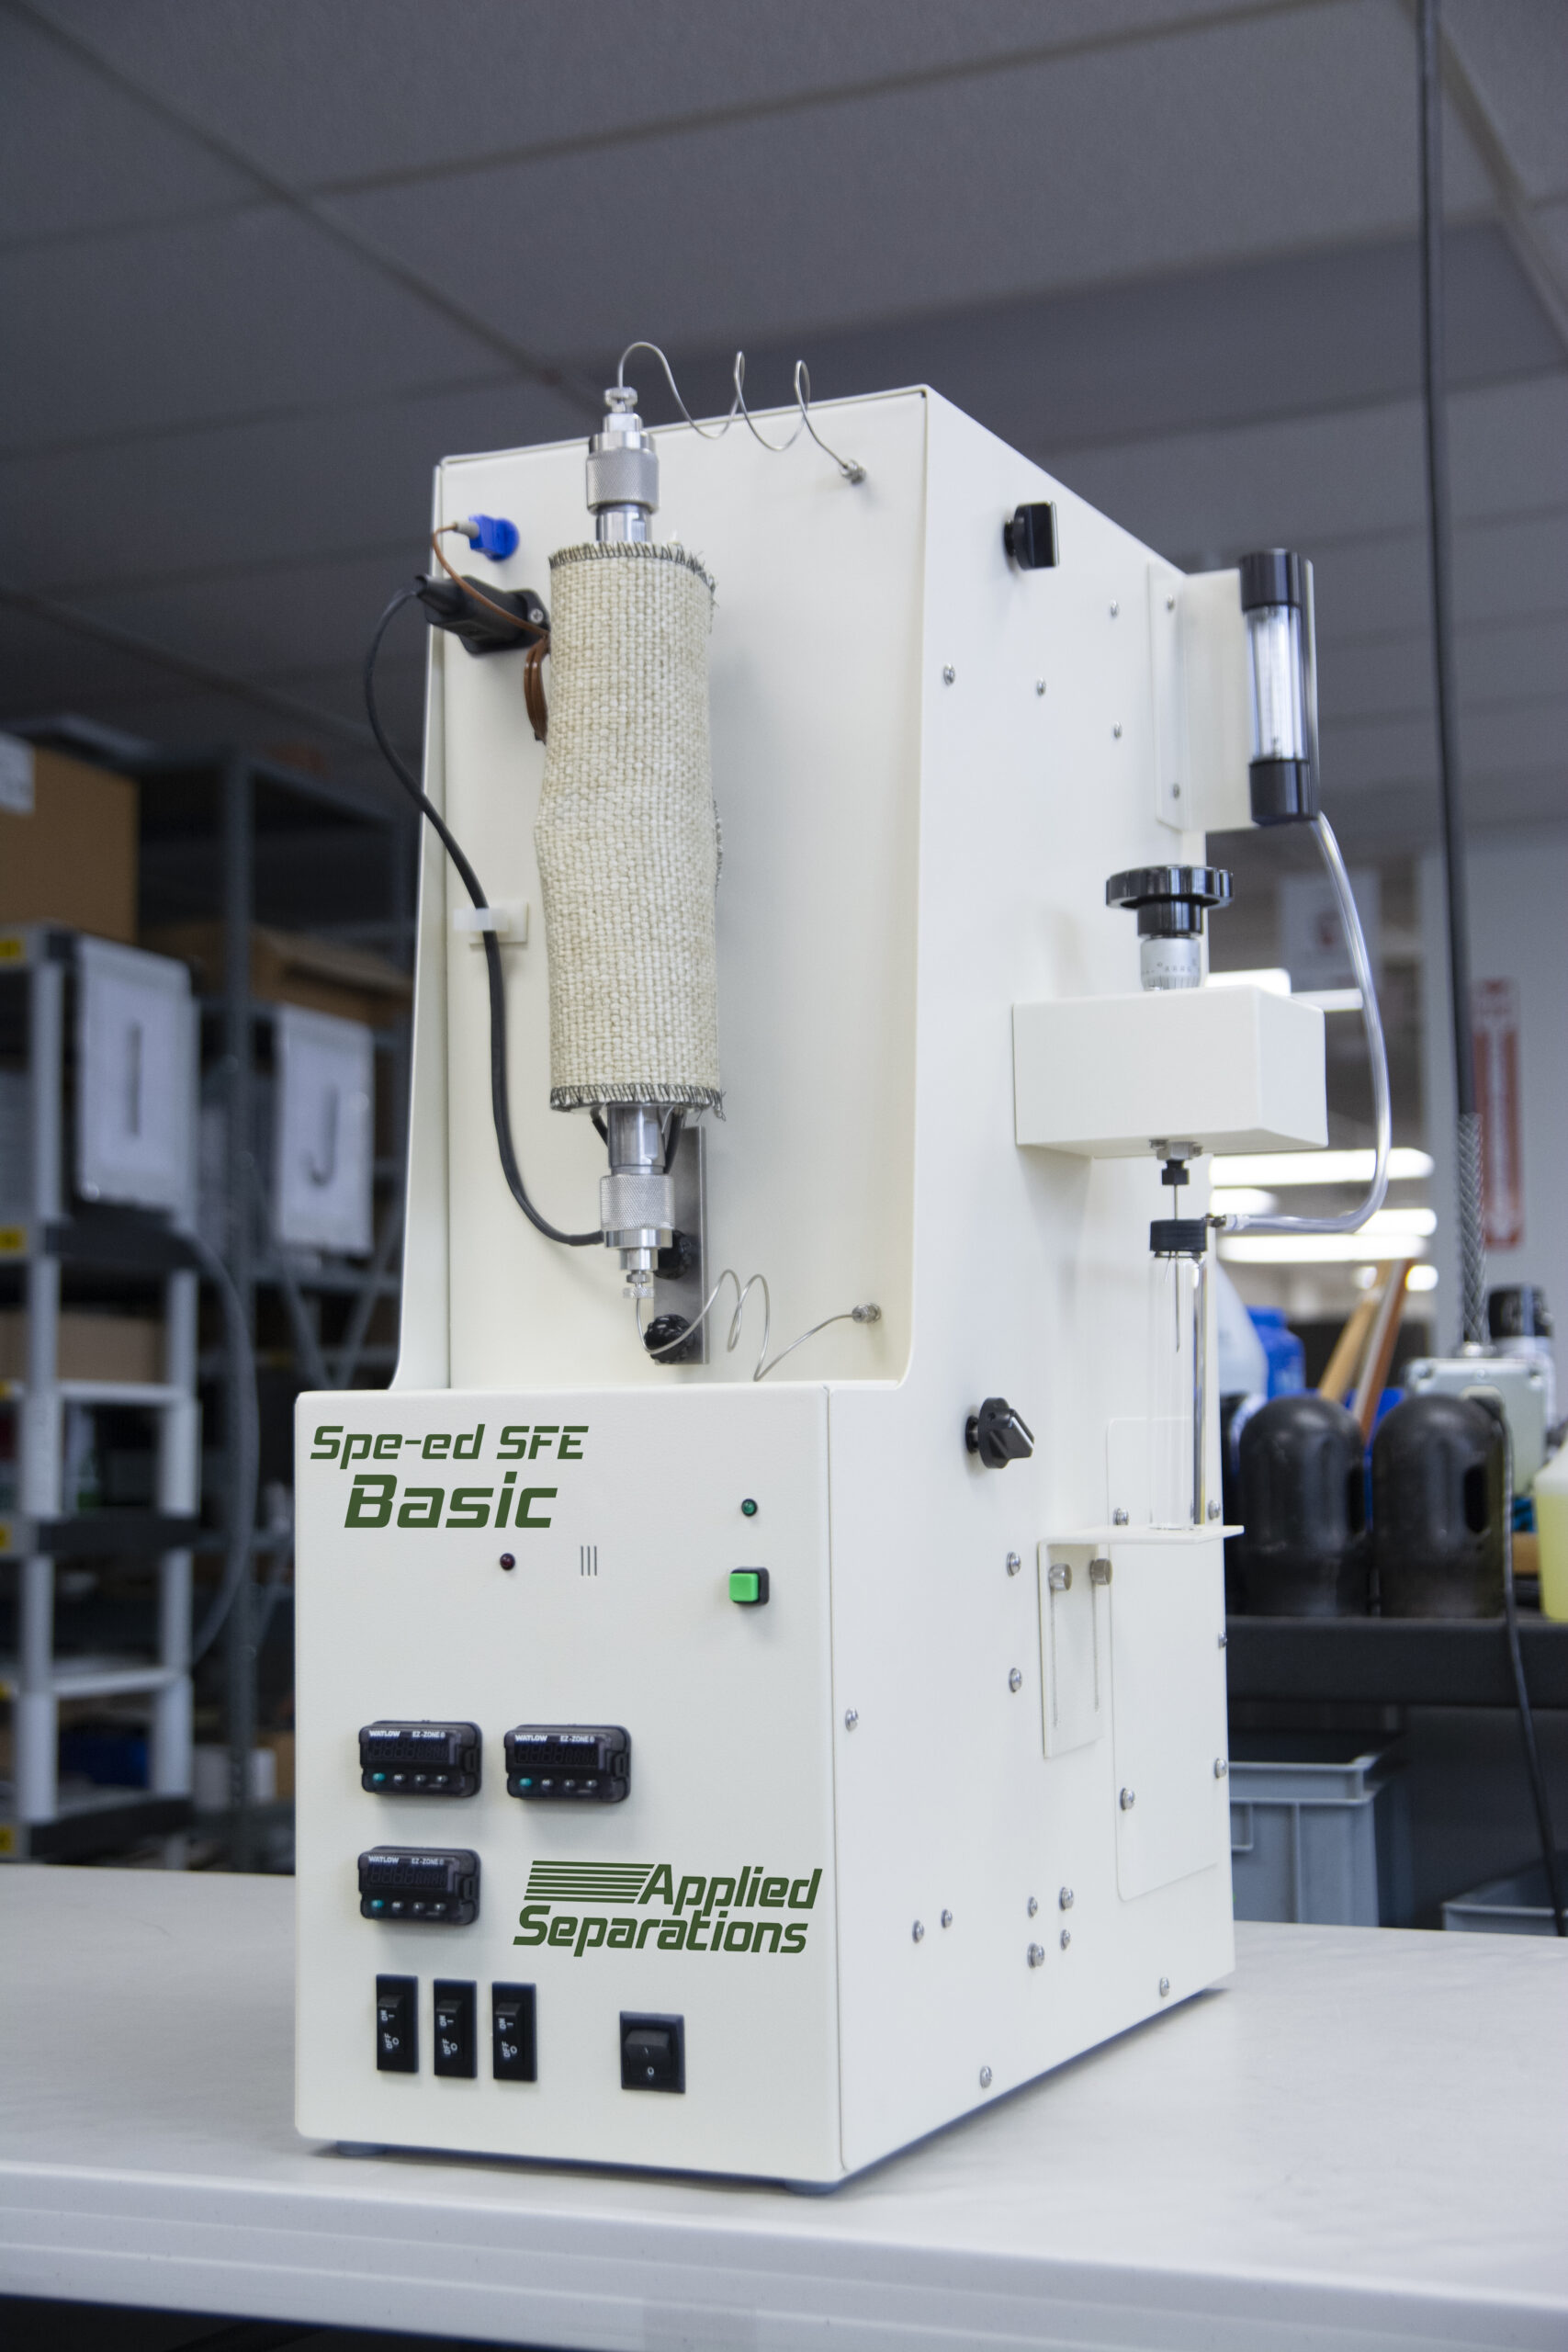 Spe-ed SFE Basic Supercritical Fluid System